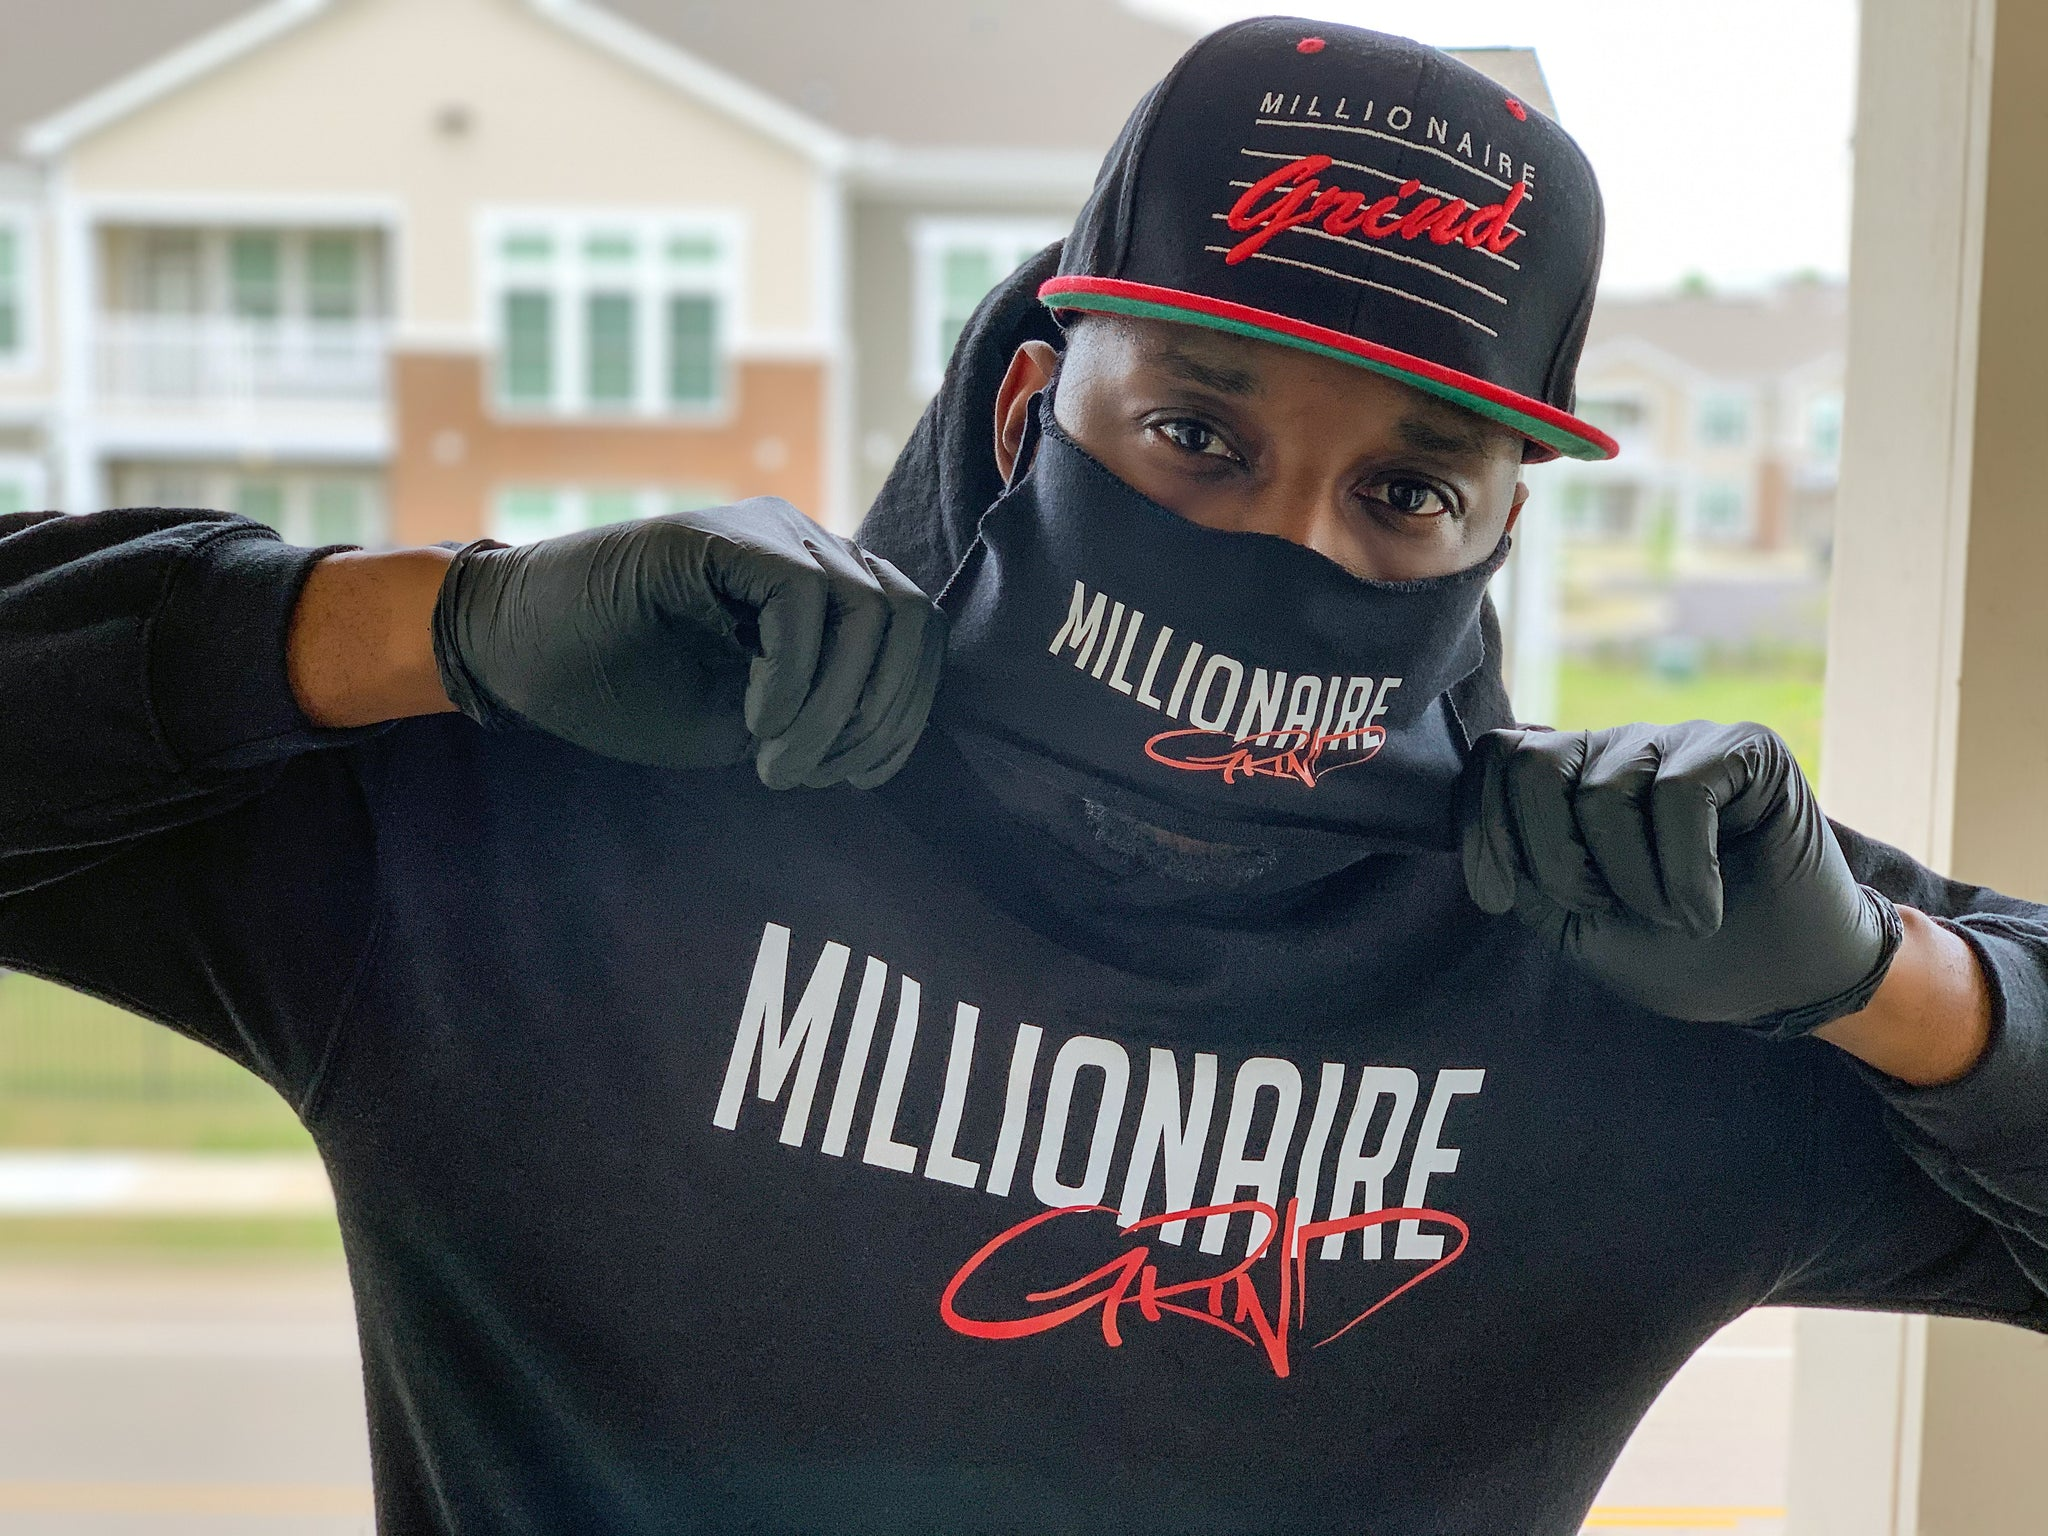 Millionaire Grind - Daily Face Cover